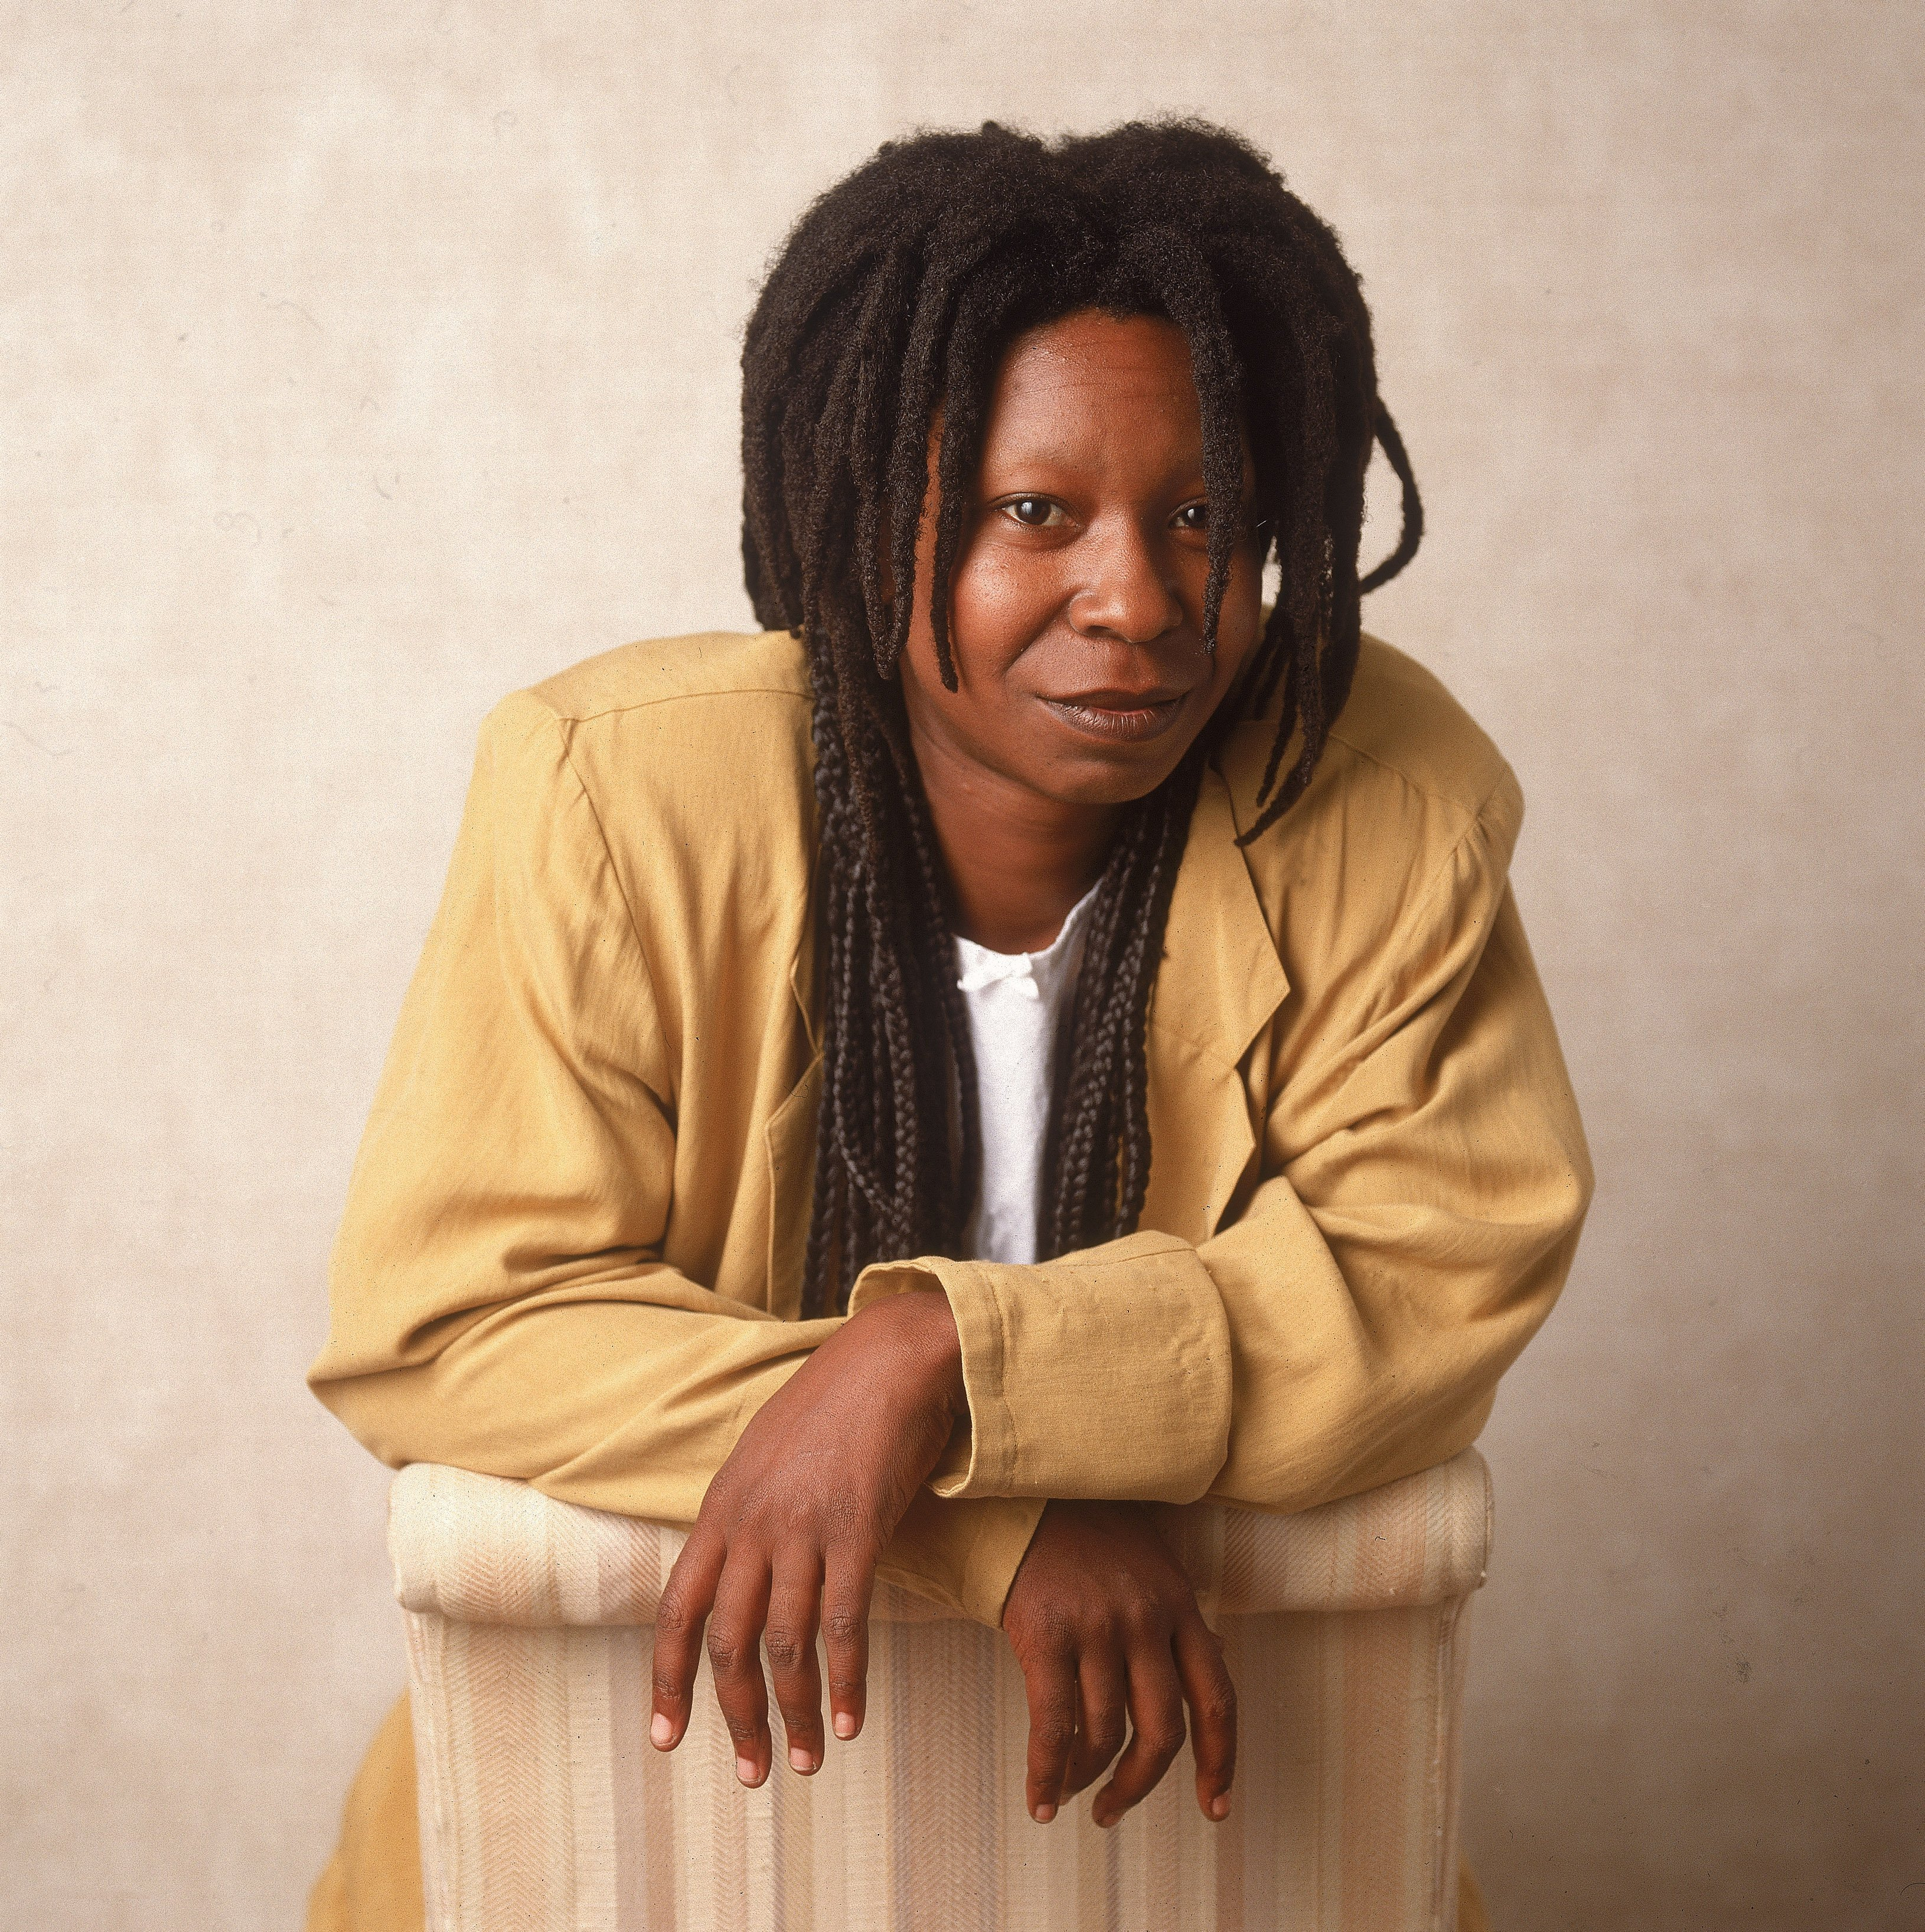 Studio portrait of American actor and comedian Whoopi Goldberg leaning on a chair, 1988. | Source: Getty Images